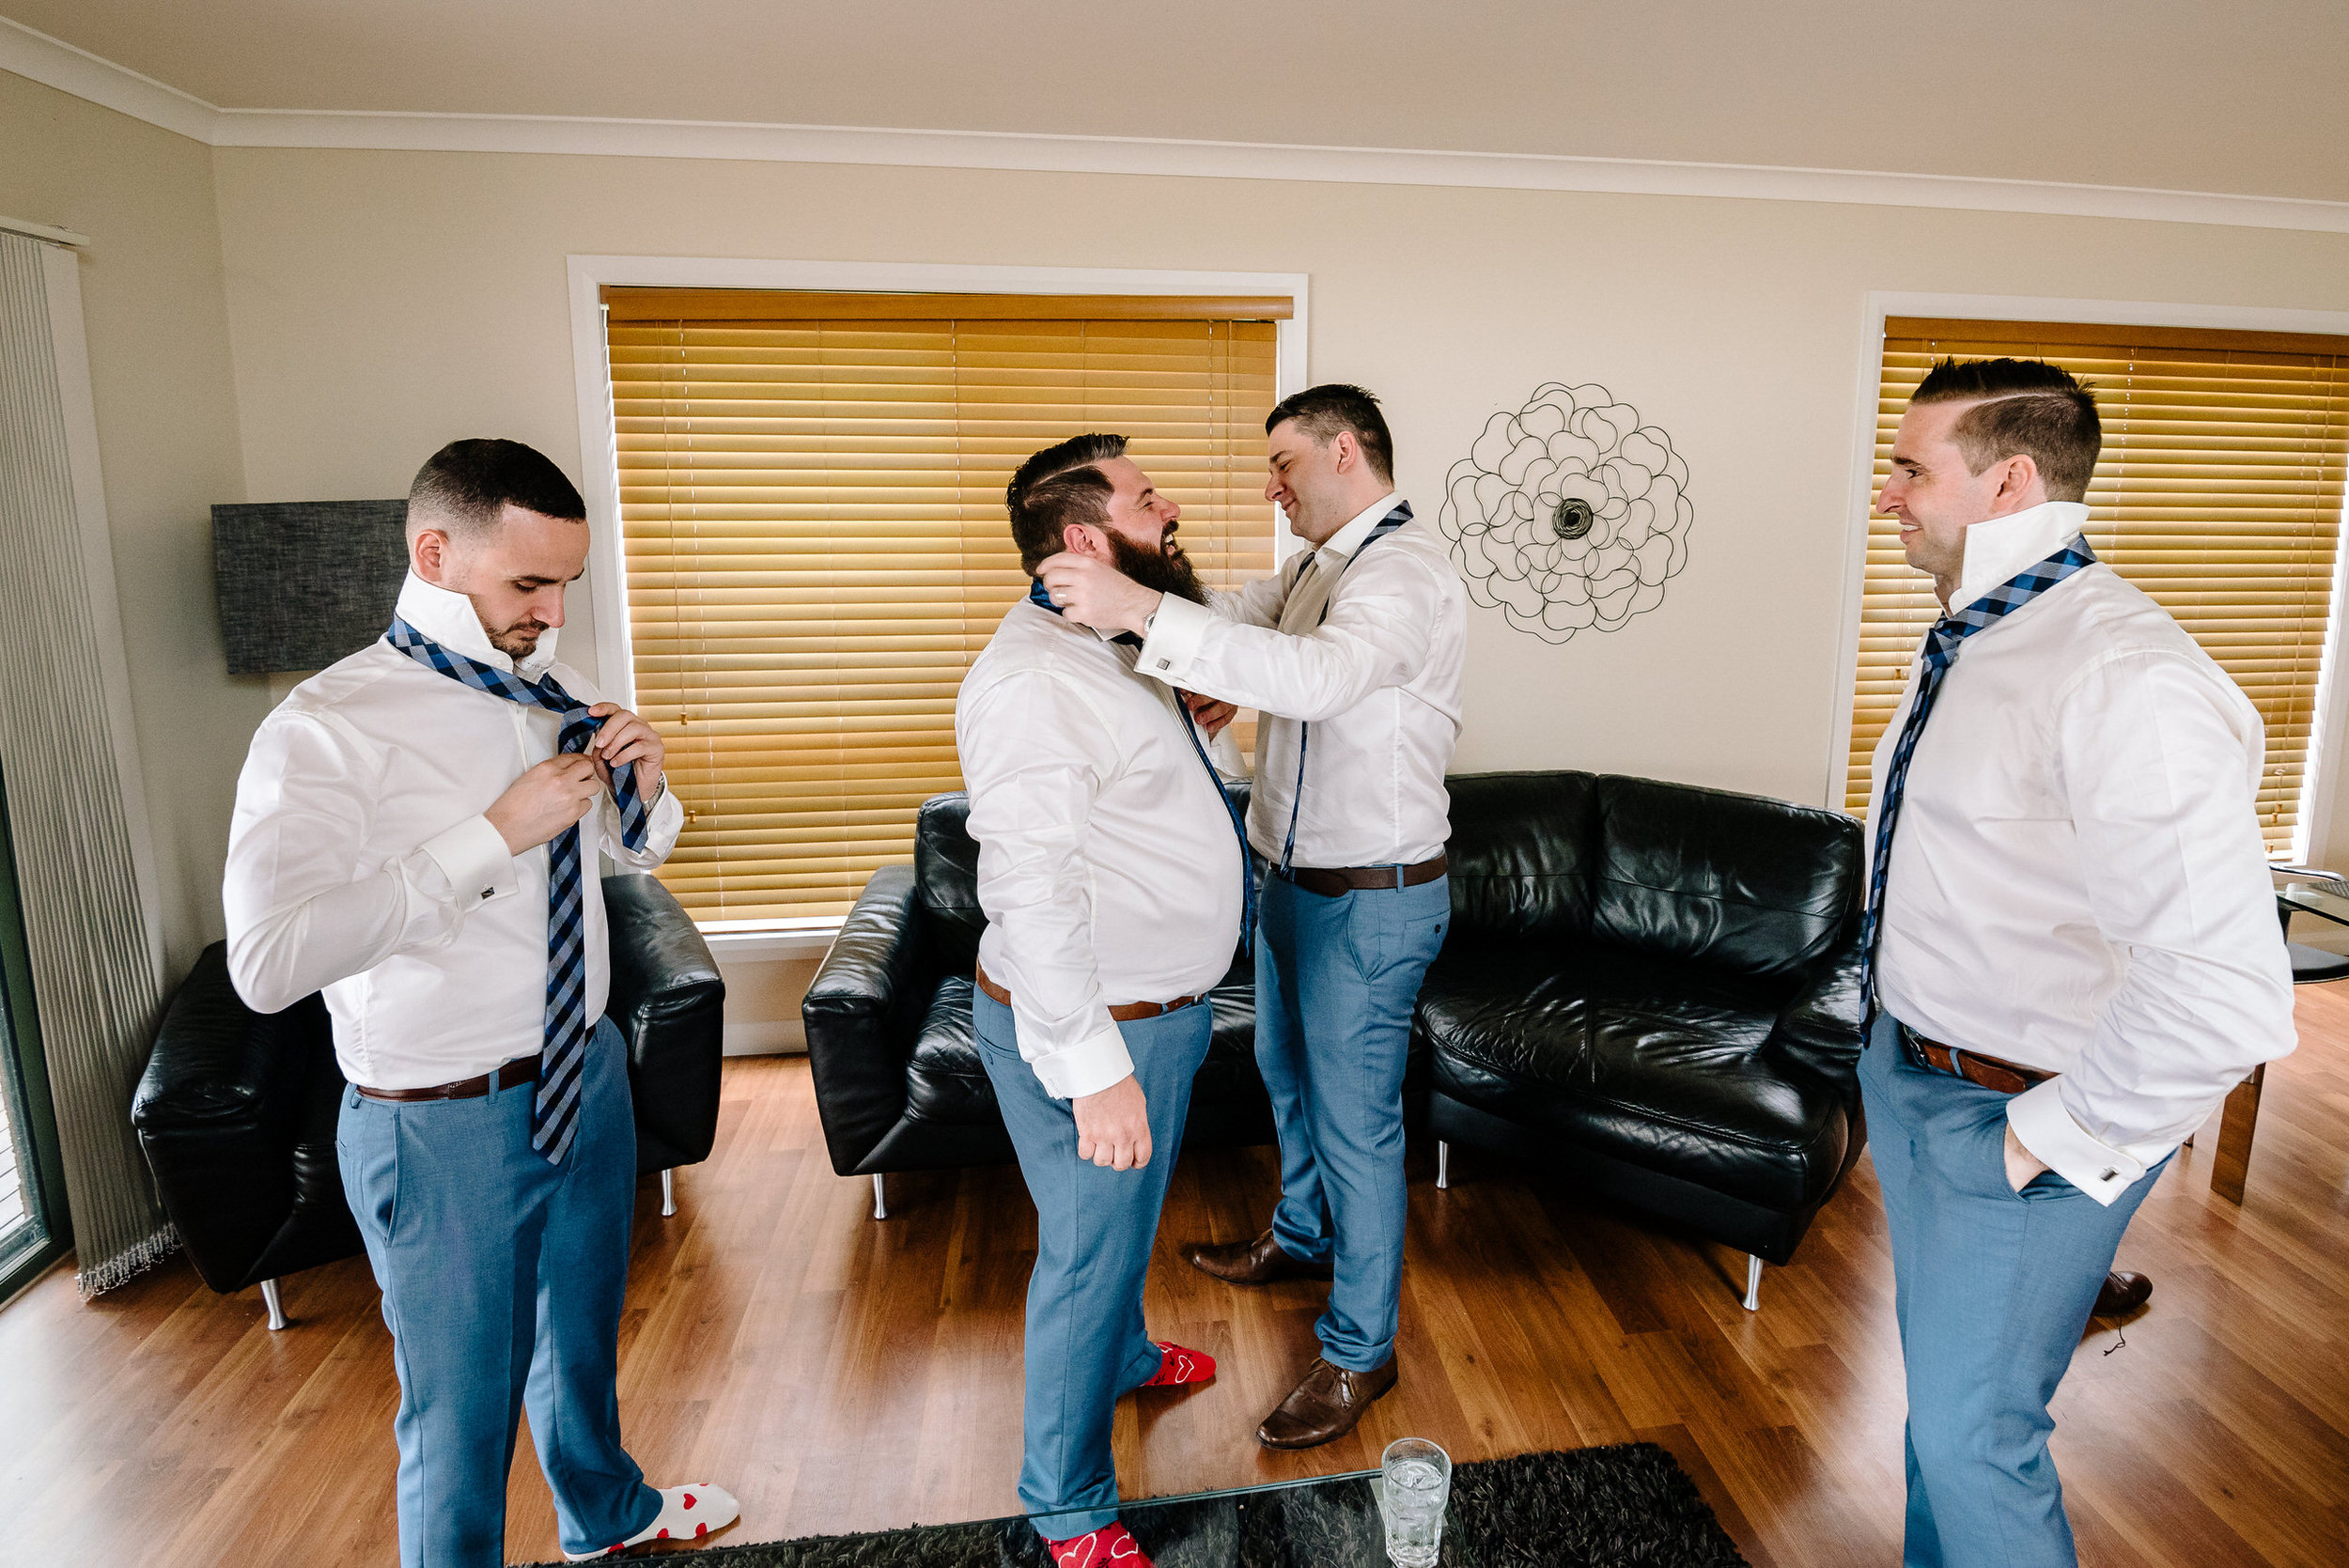 Chateau_Dore_Wedding_Photography_Justin_and_Jim-38.JPG